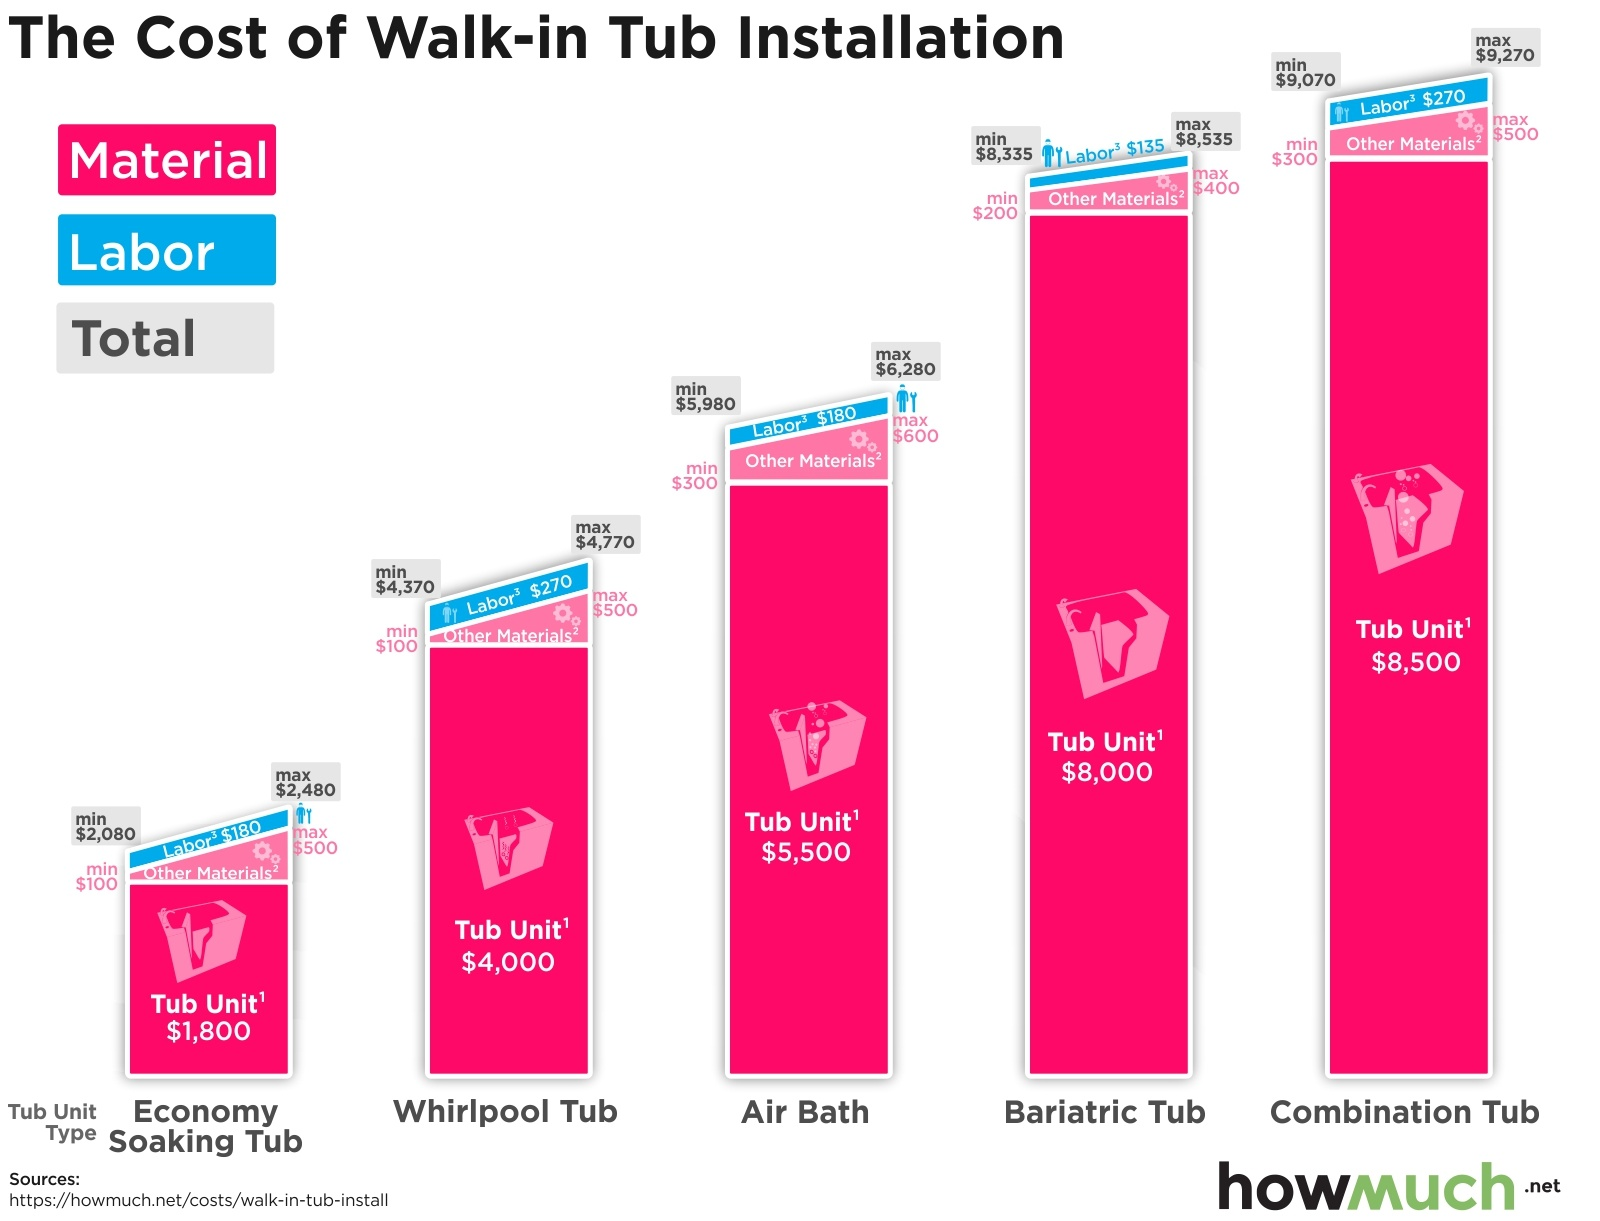 The Cost of Walk-in Tub Installation